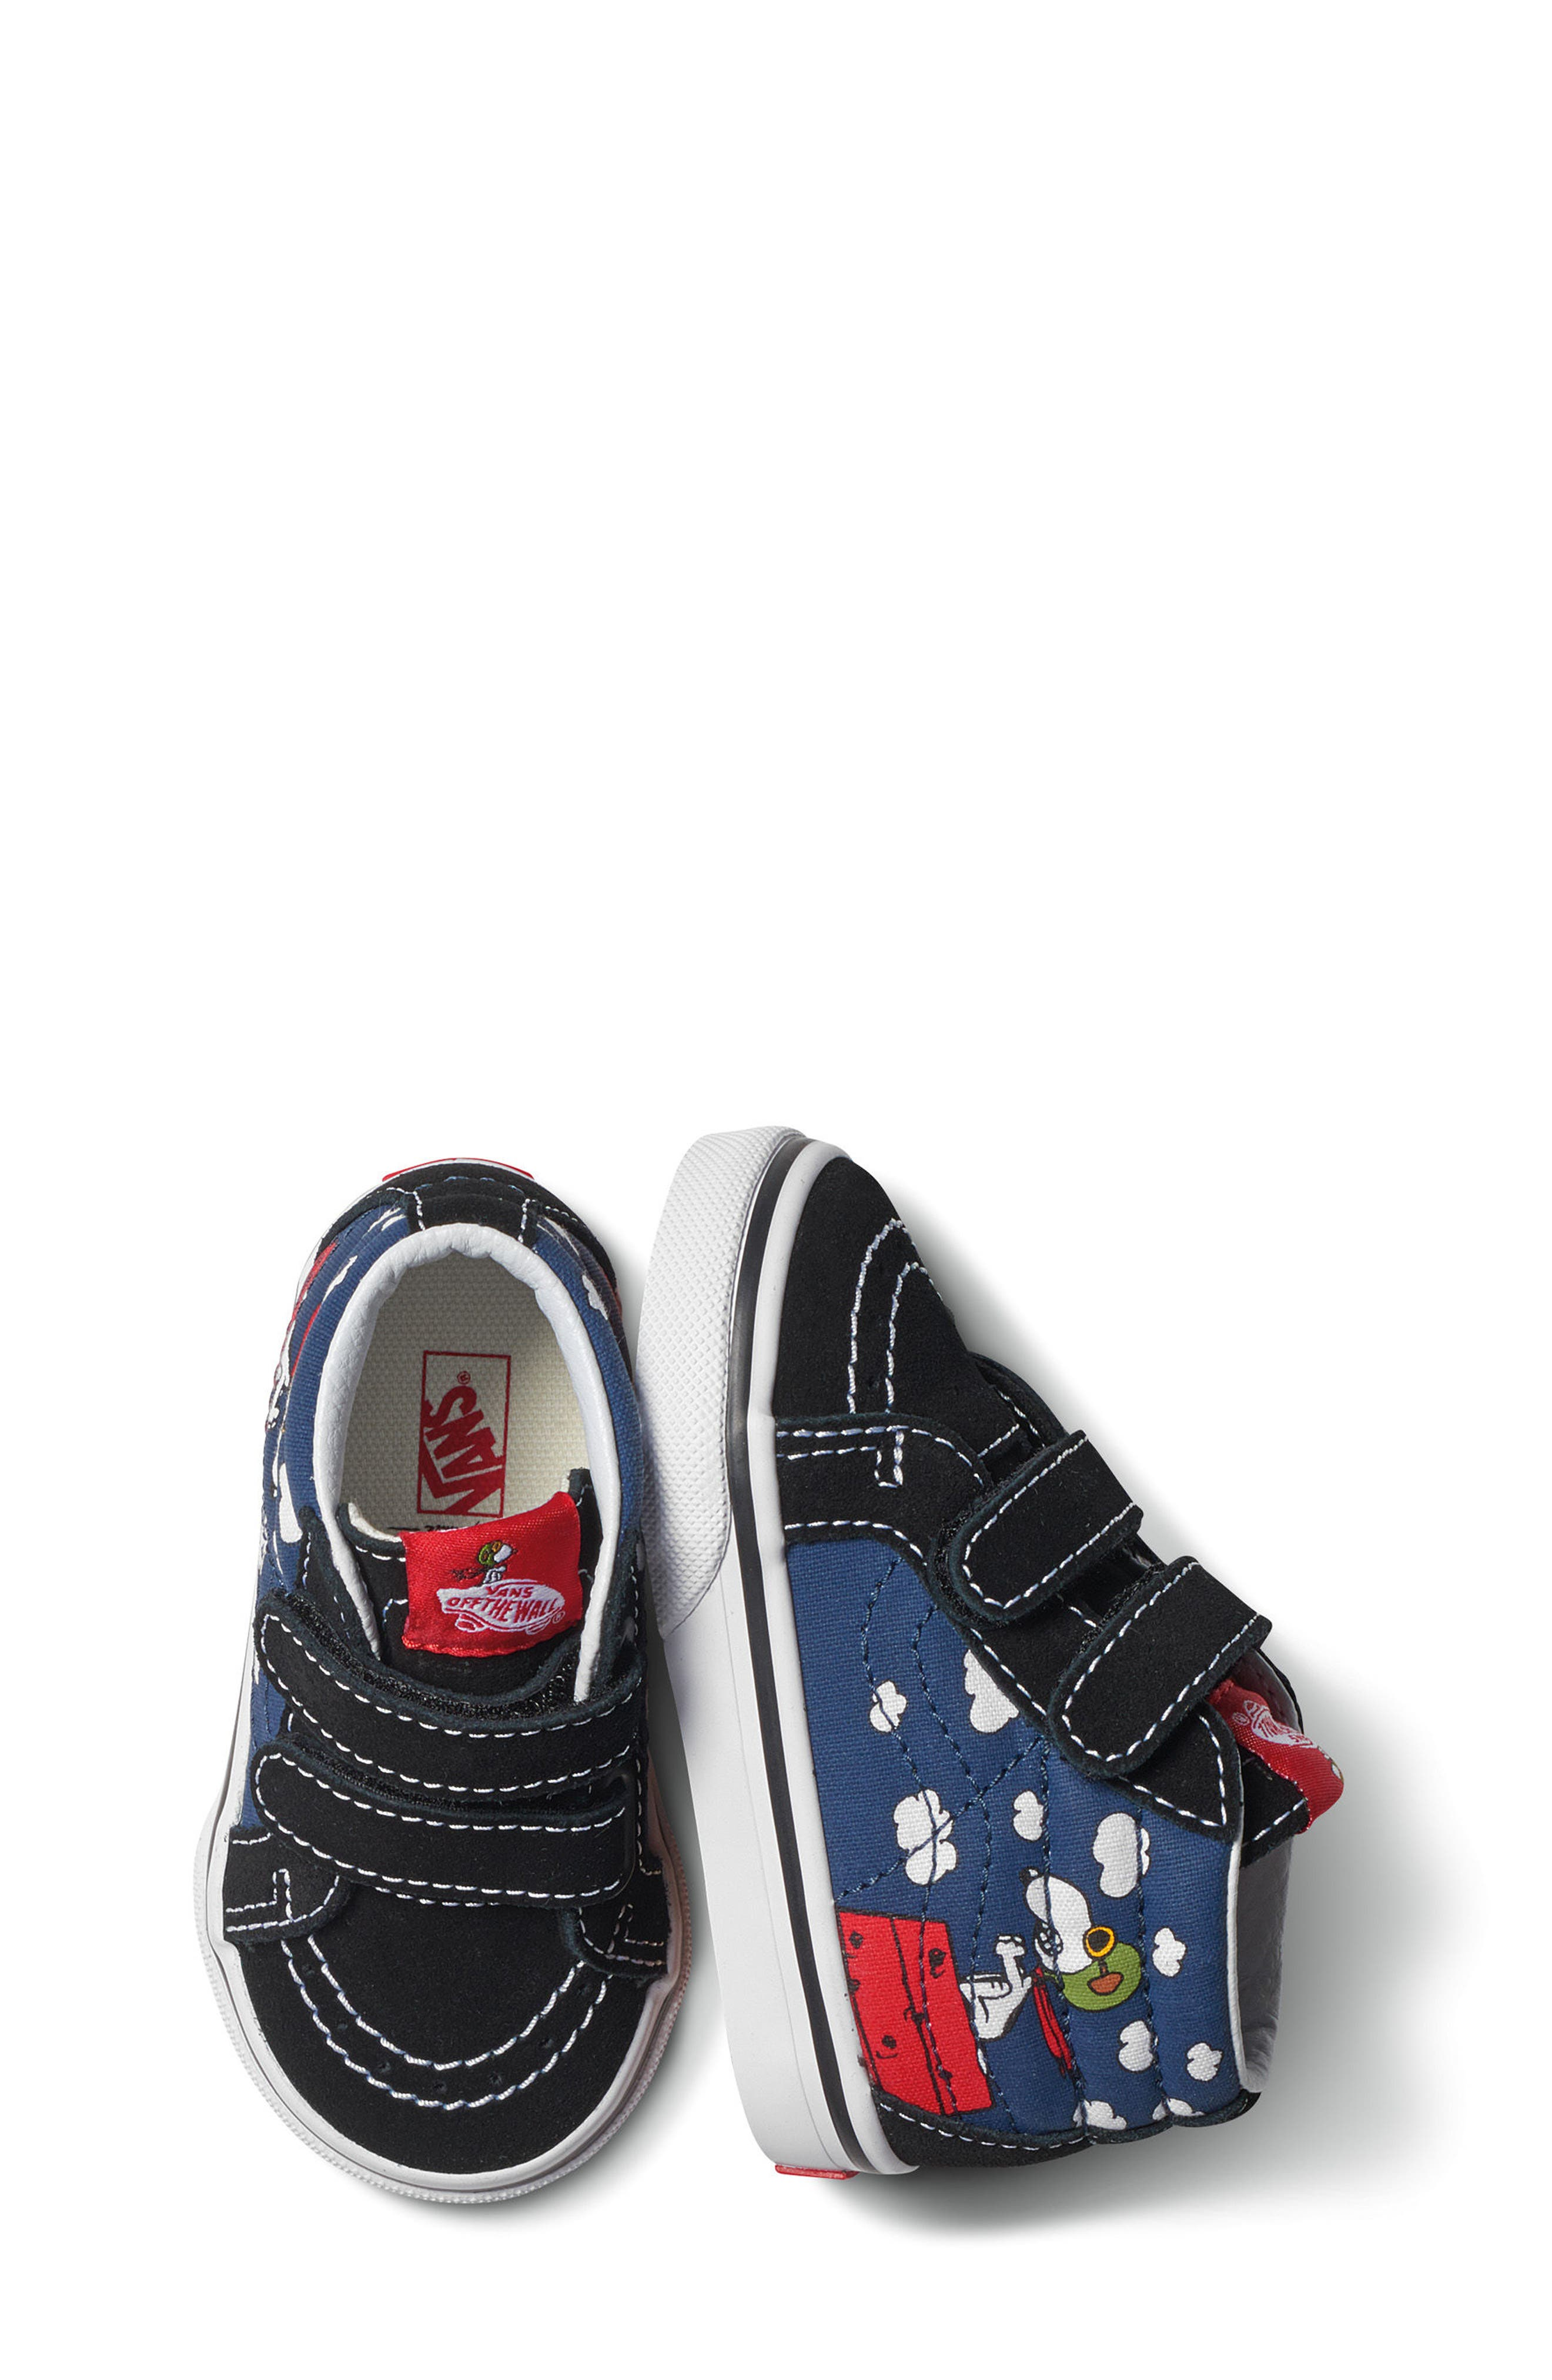 x Peanuts SK8-Mid Reissue V Sneaker,                             Alternate thumbnail 8, color,                             Flying Ace/ Blue Canvas